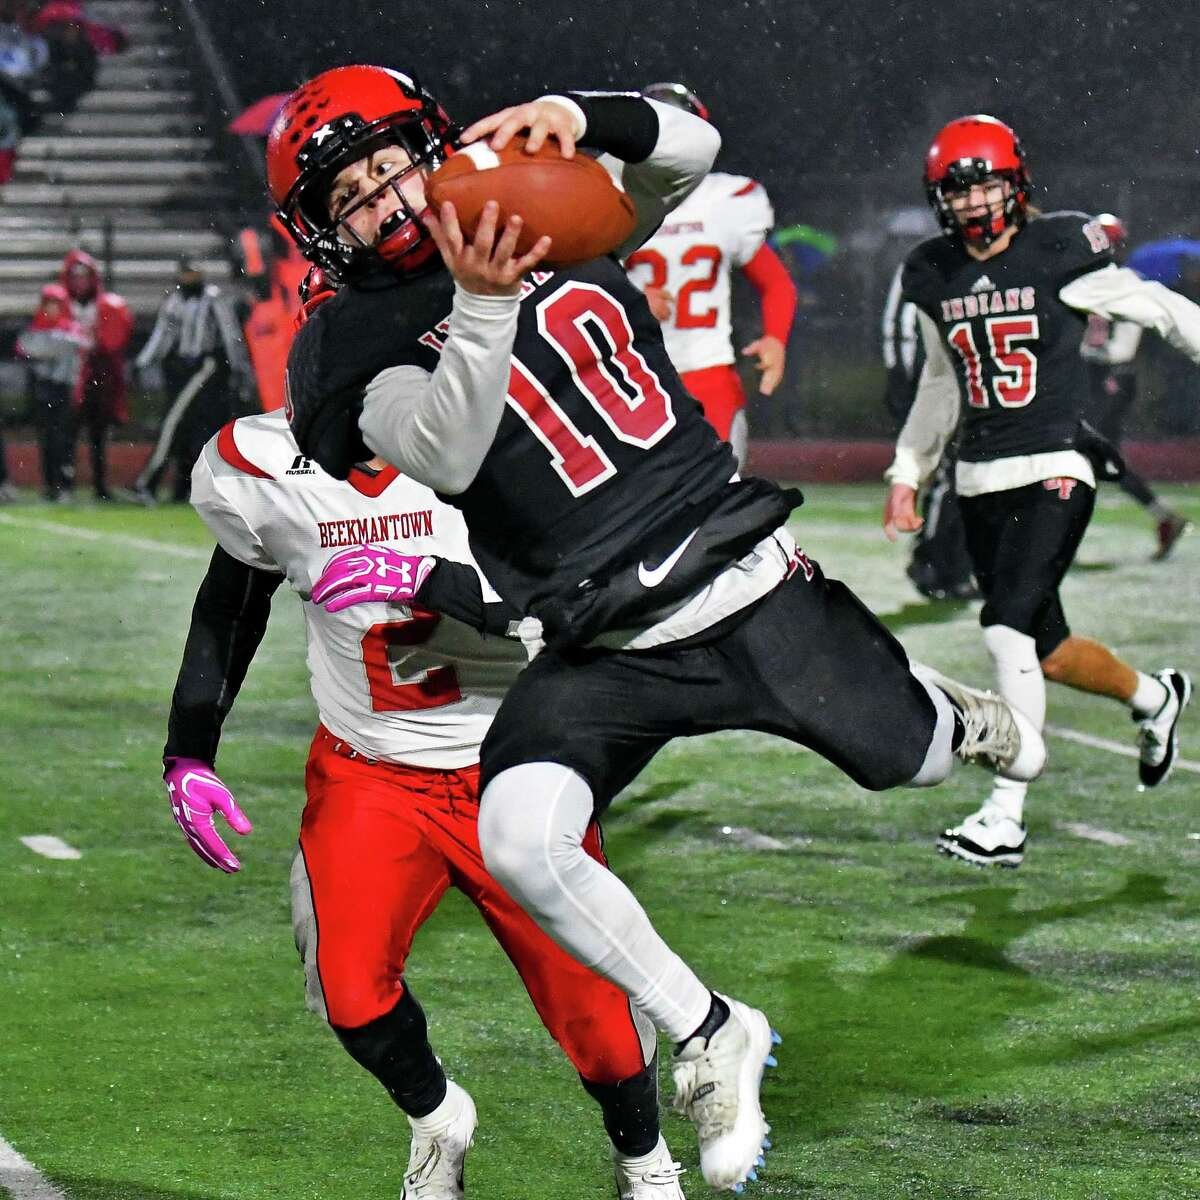 Glens Falls' #10, Trent Girard reels in a pass from QB Joseph Girard III during their game against Beekmantown Friday Nov. 9, 2018 in Clifton Park, NY. (John Carl D'Annibale/Times Union)